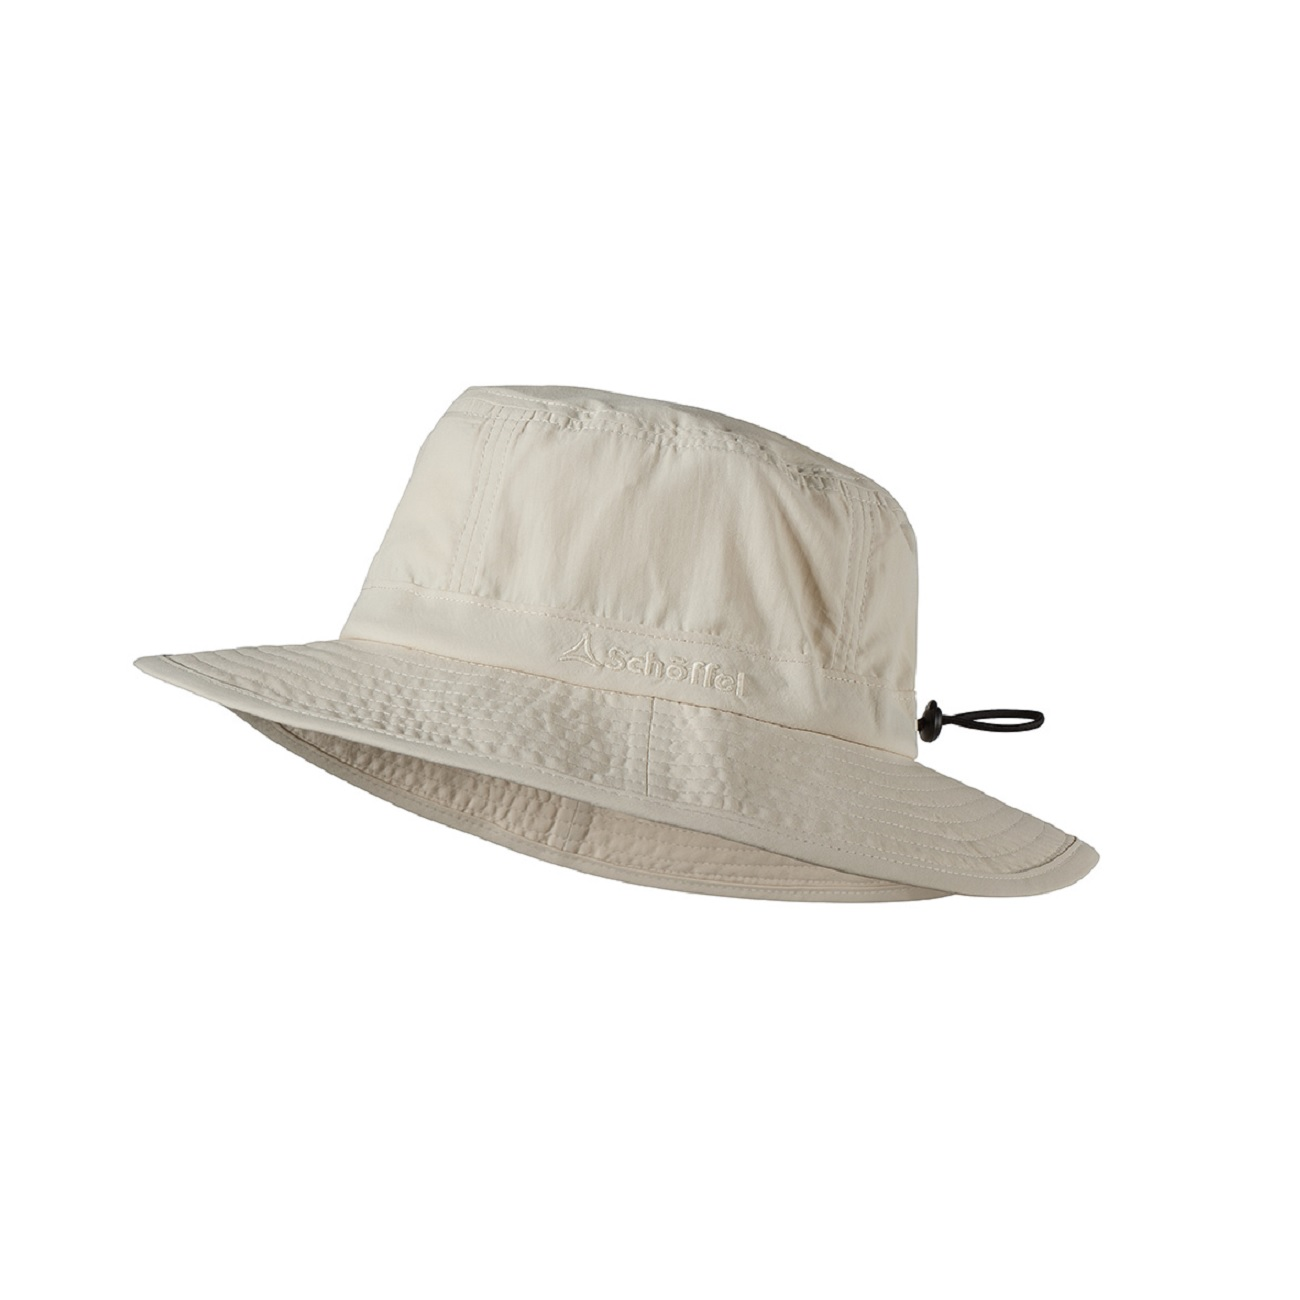 Schoffel (ショッフェル) SUN HAT4 / MOONBEAM(Unisex)